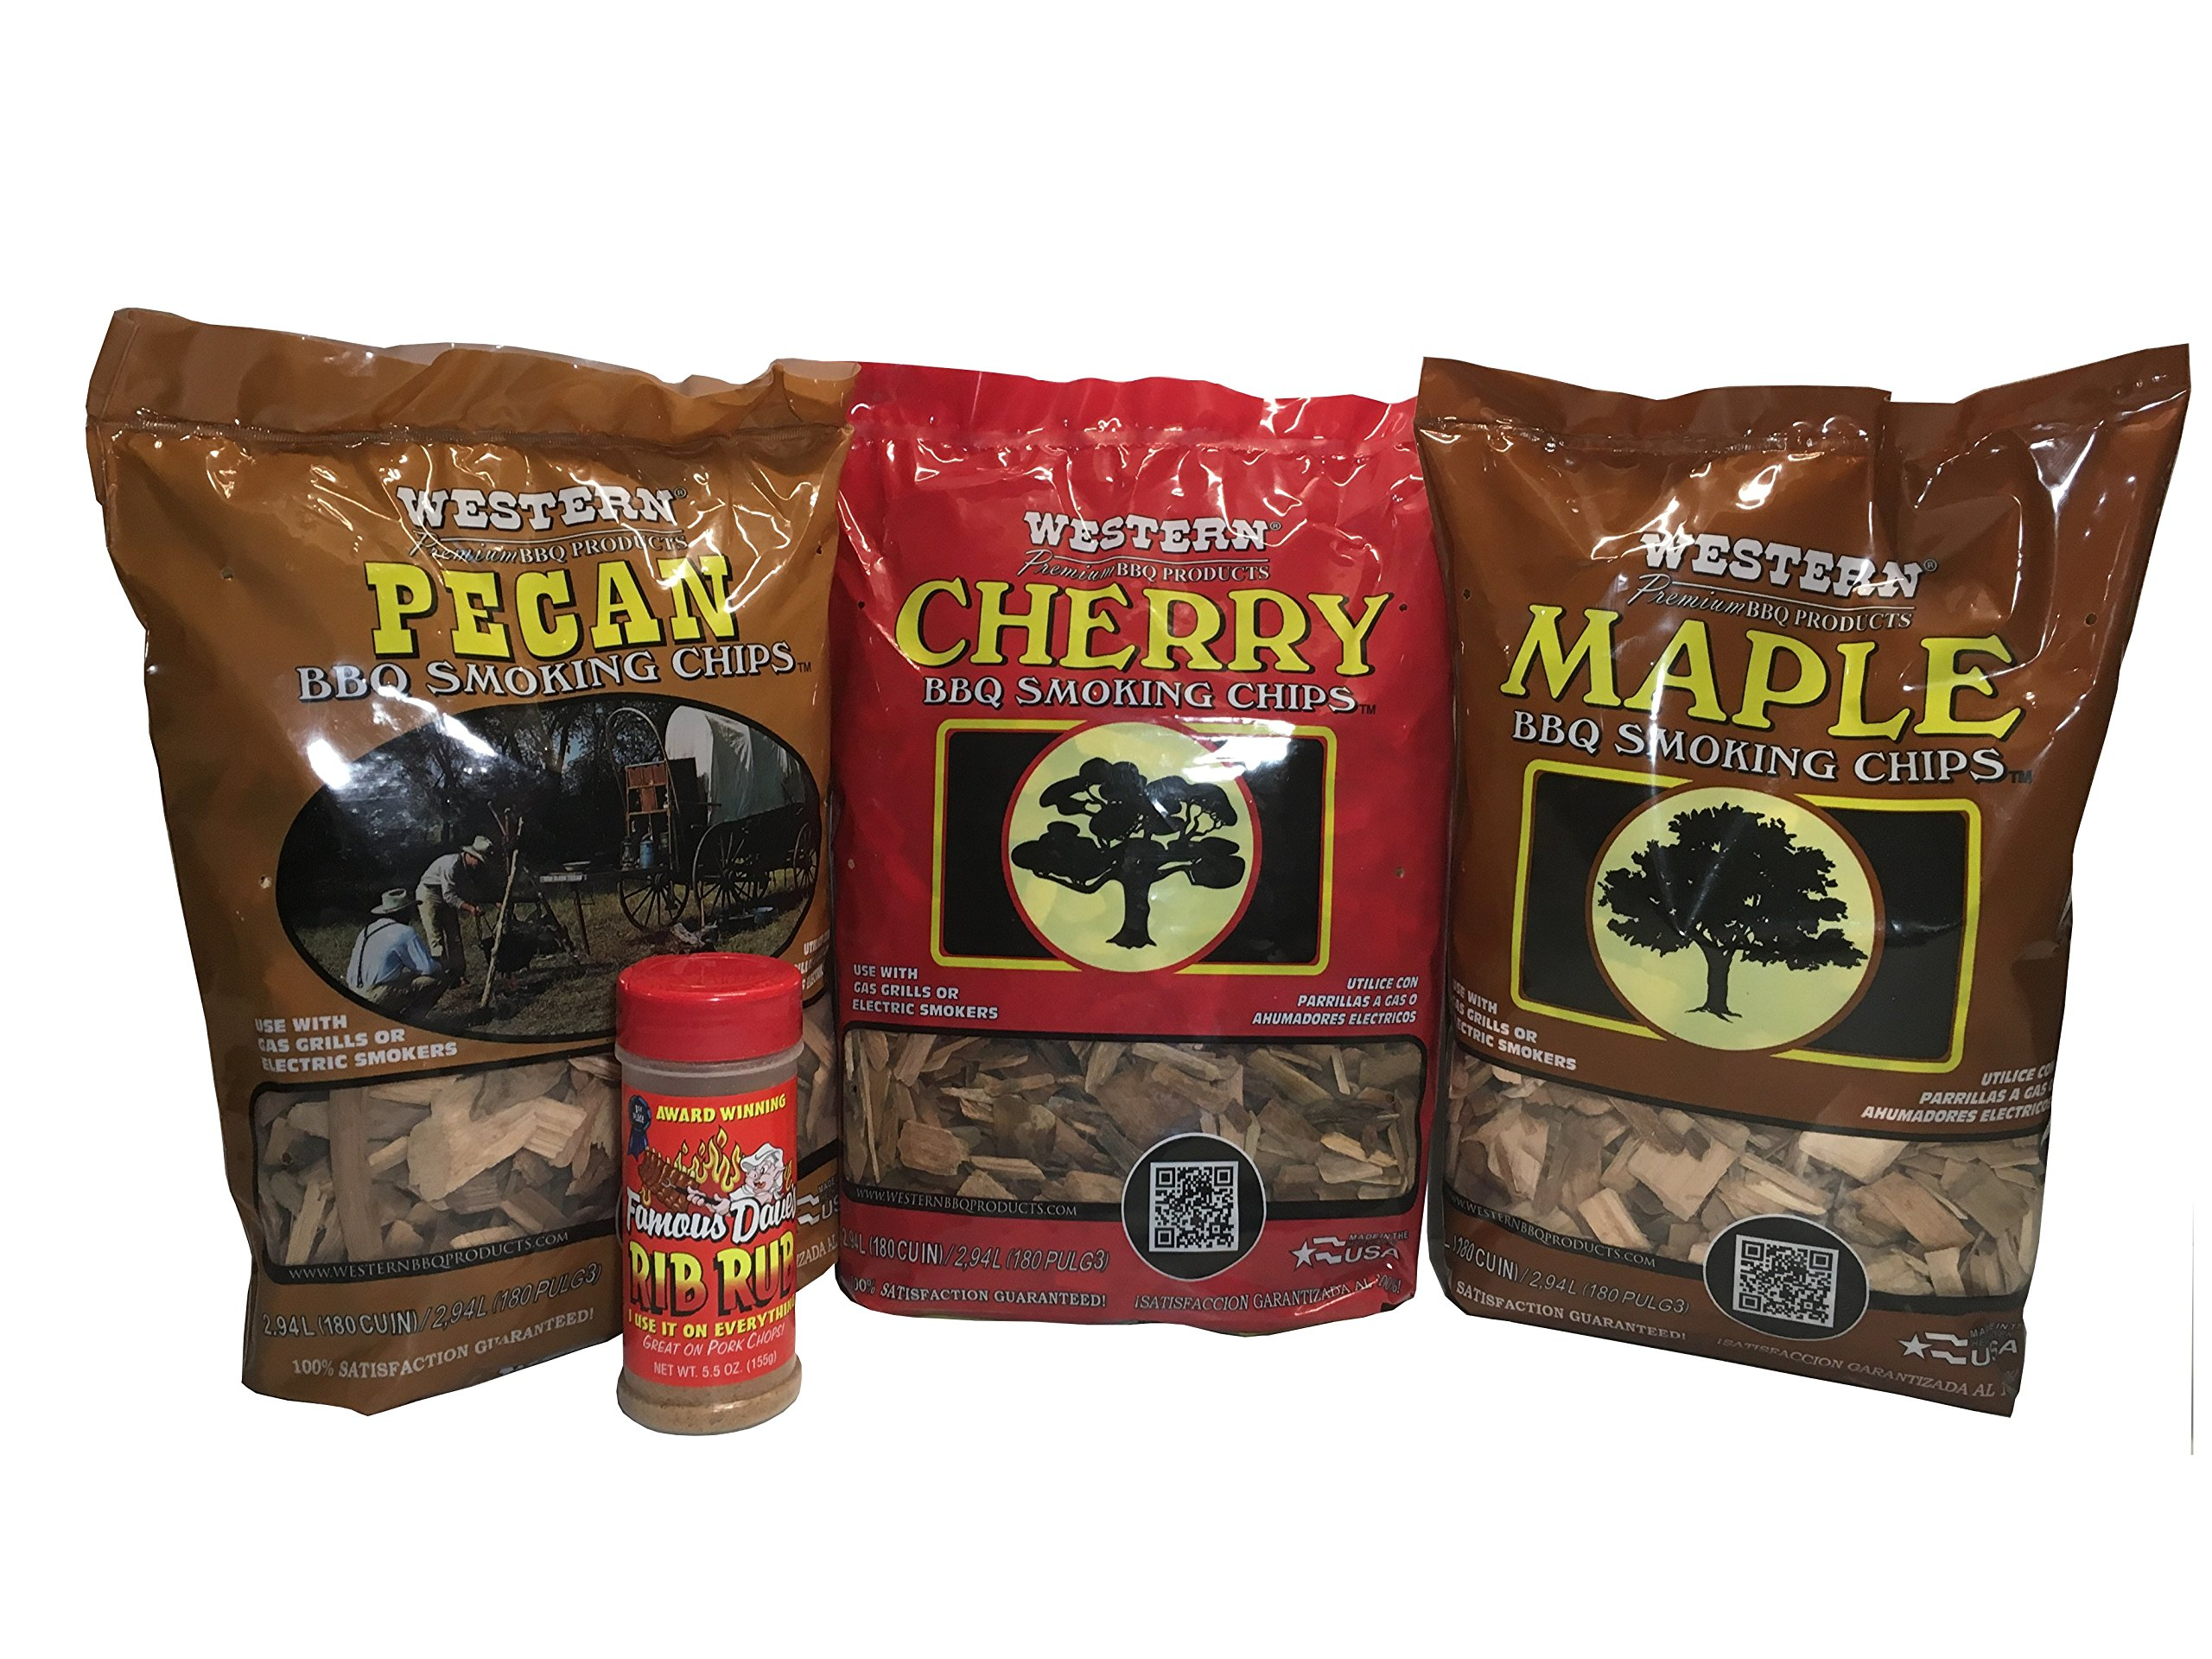 Western Unique Wood Chip Bundle with FREE BOTTLE of Famous Dave's Rib Rub - Variety Pack Bundle (3) - Unique Flavors - Pecan, Cherry, and Maple